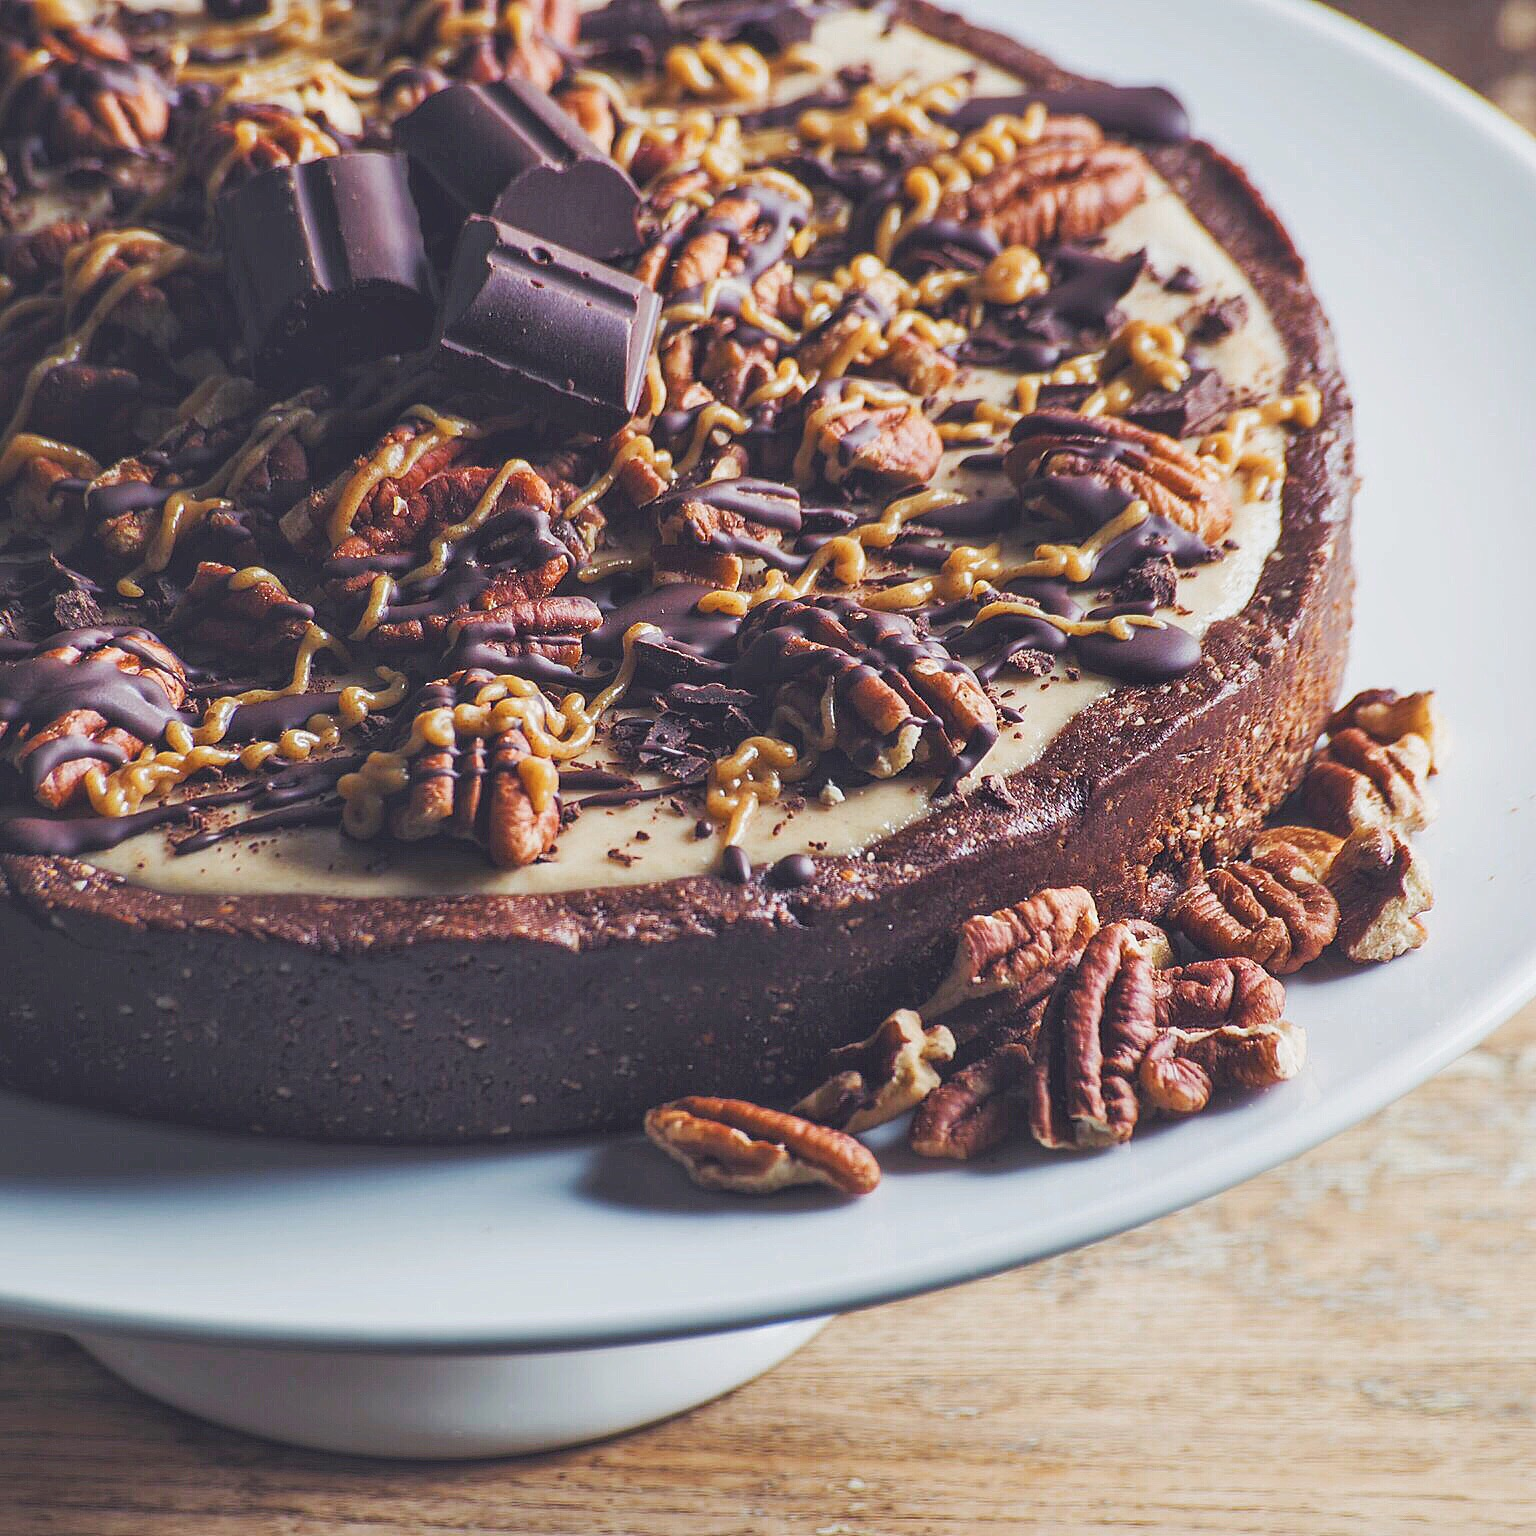 This dessert pizza is topped with chocolate, caramel and pecans, yum!  Photo by: Tim Donnelly.